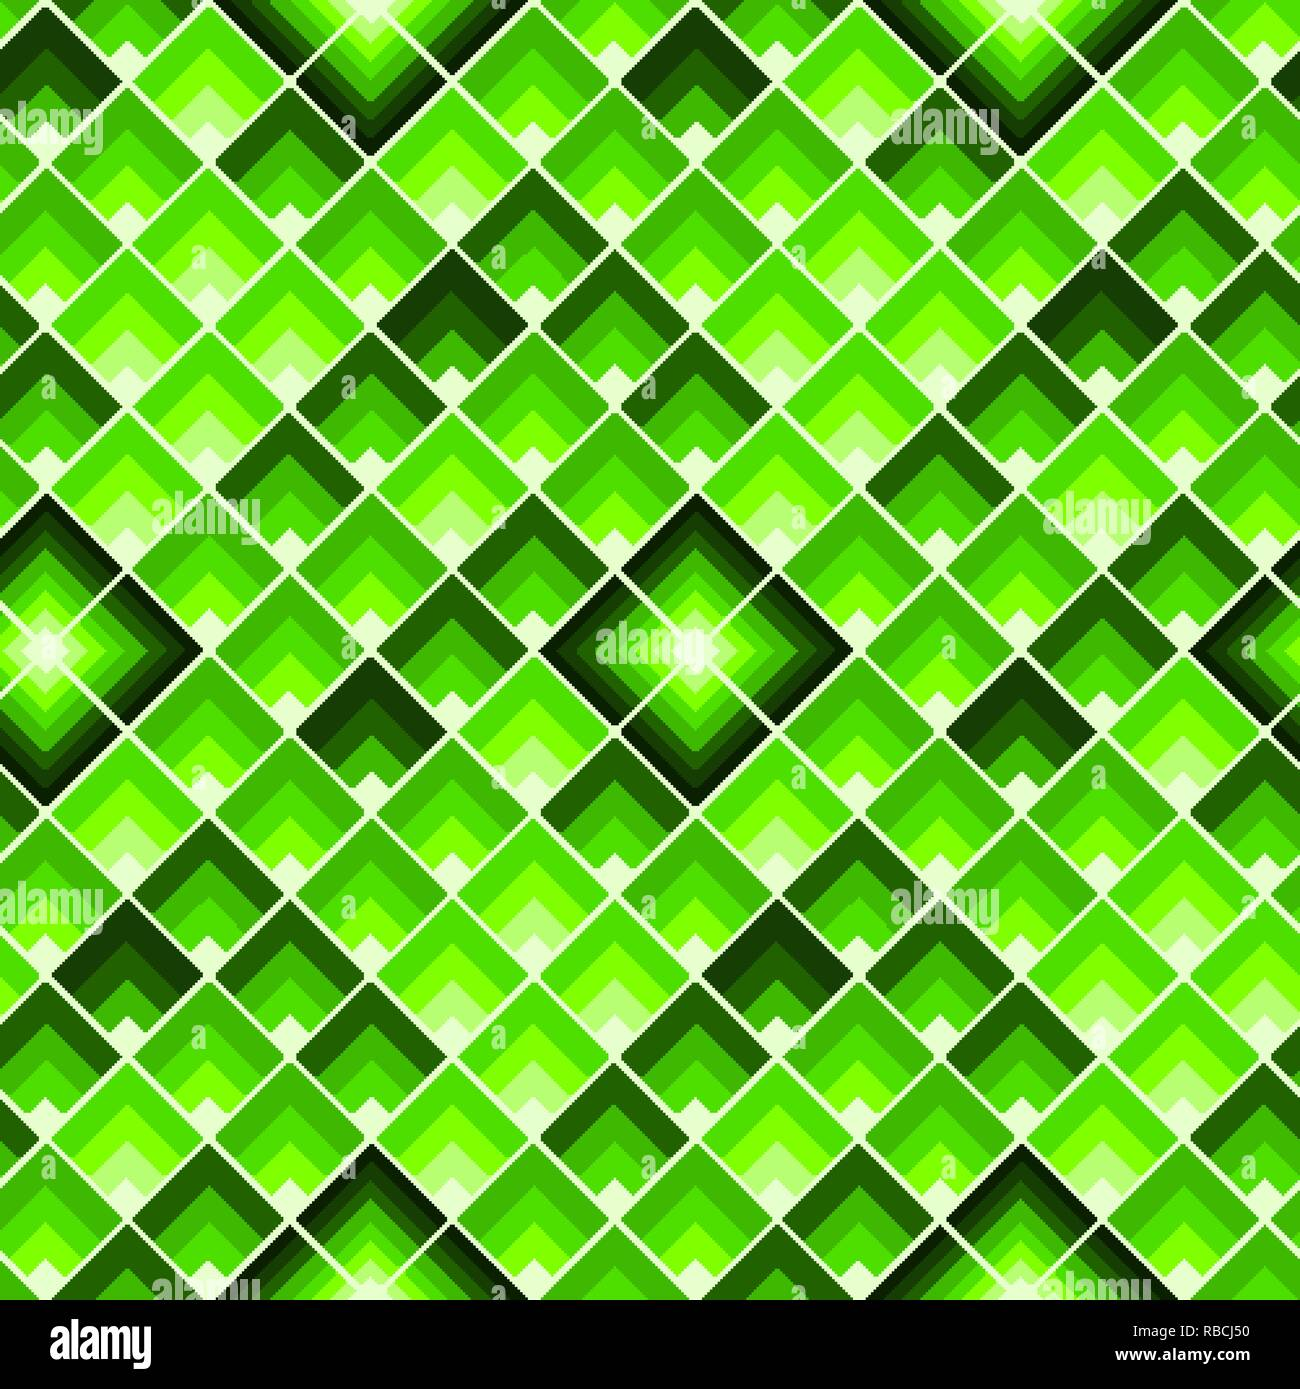 Rectangles or lozenges seamless pattern in trendy neon lime color - Stock Vector